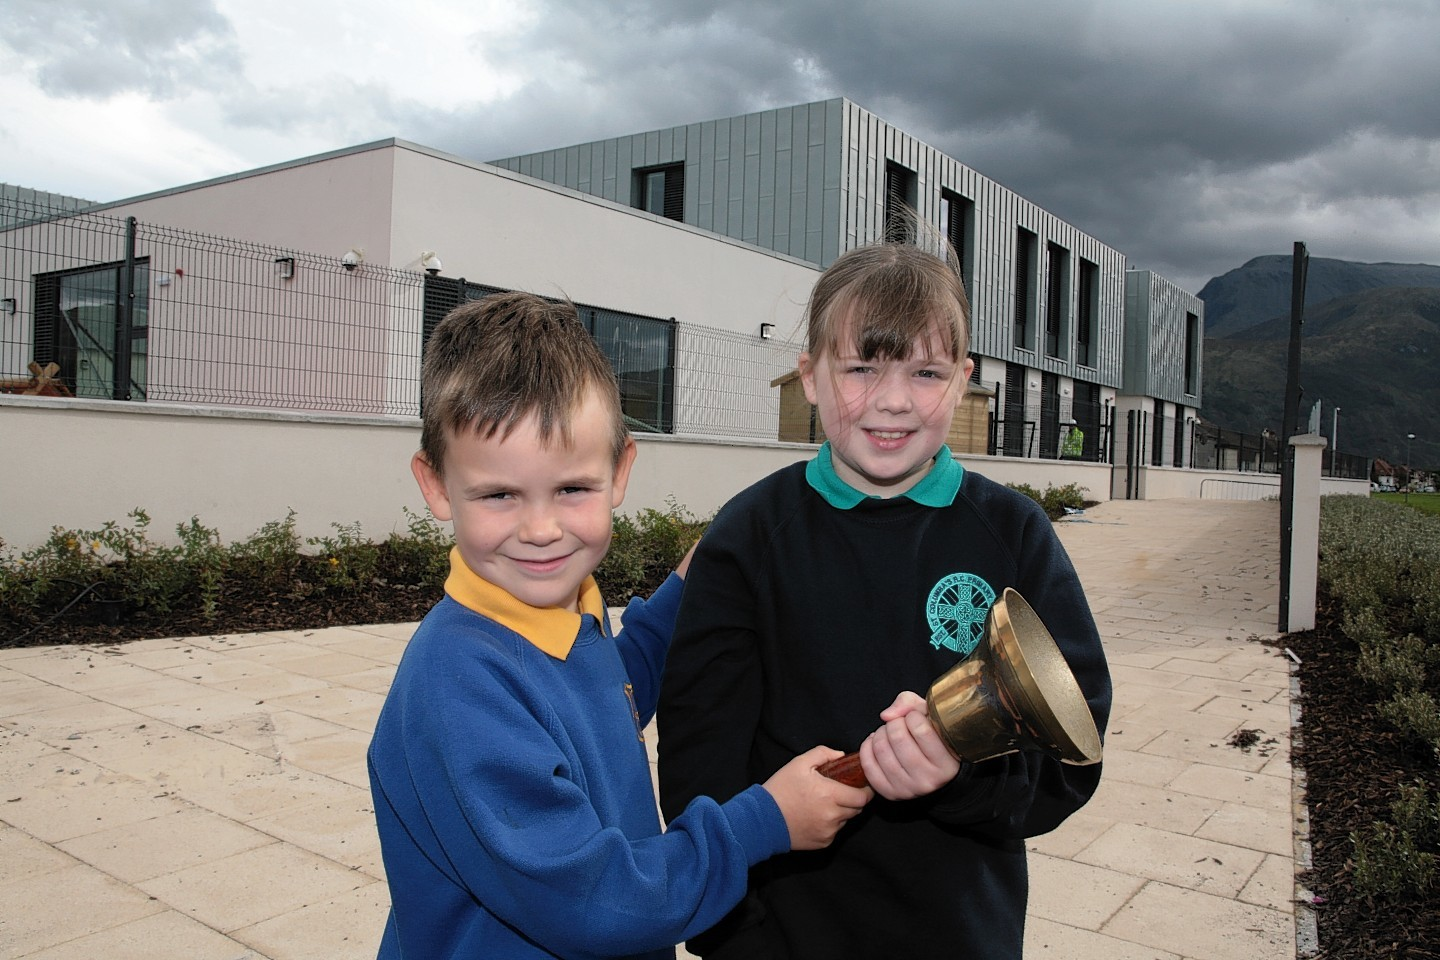 Coby Fyfe (left) of Caol Primary School and Emma McPhail of Lochyside Primary School ring the changes as both their schools close ready for the move into the new school behind them